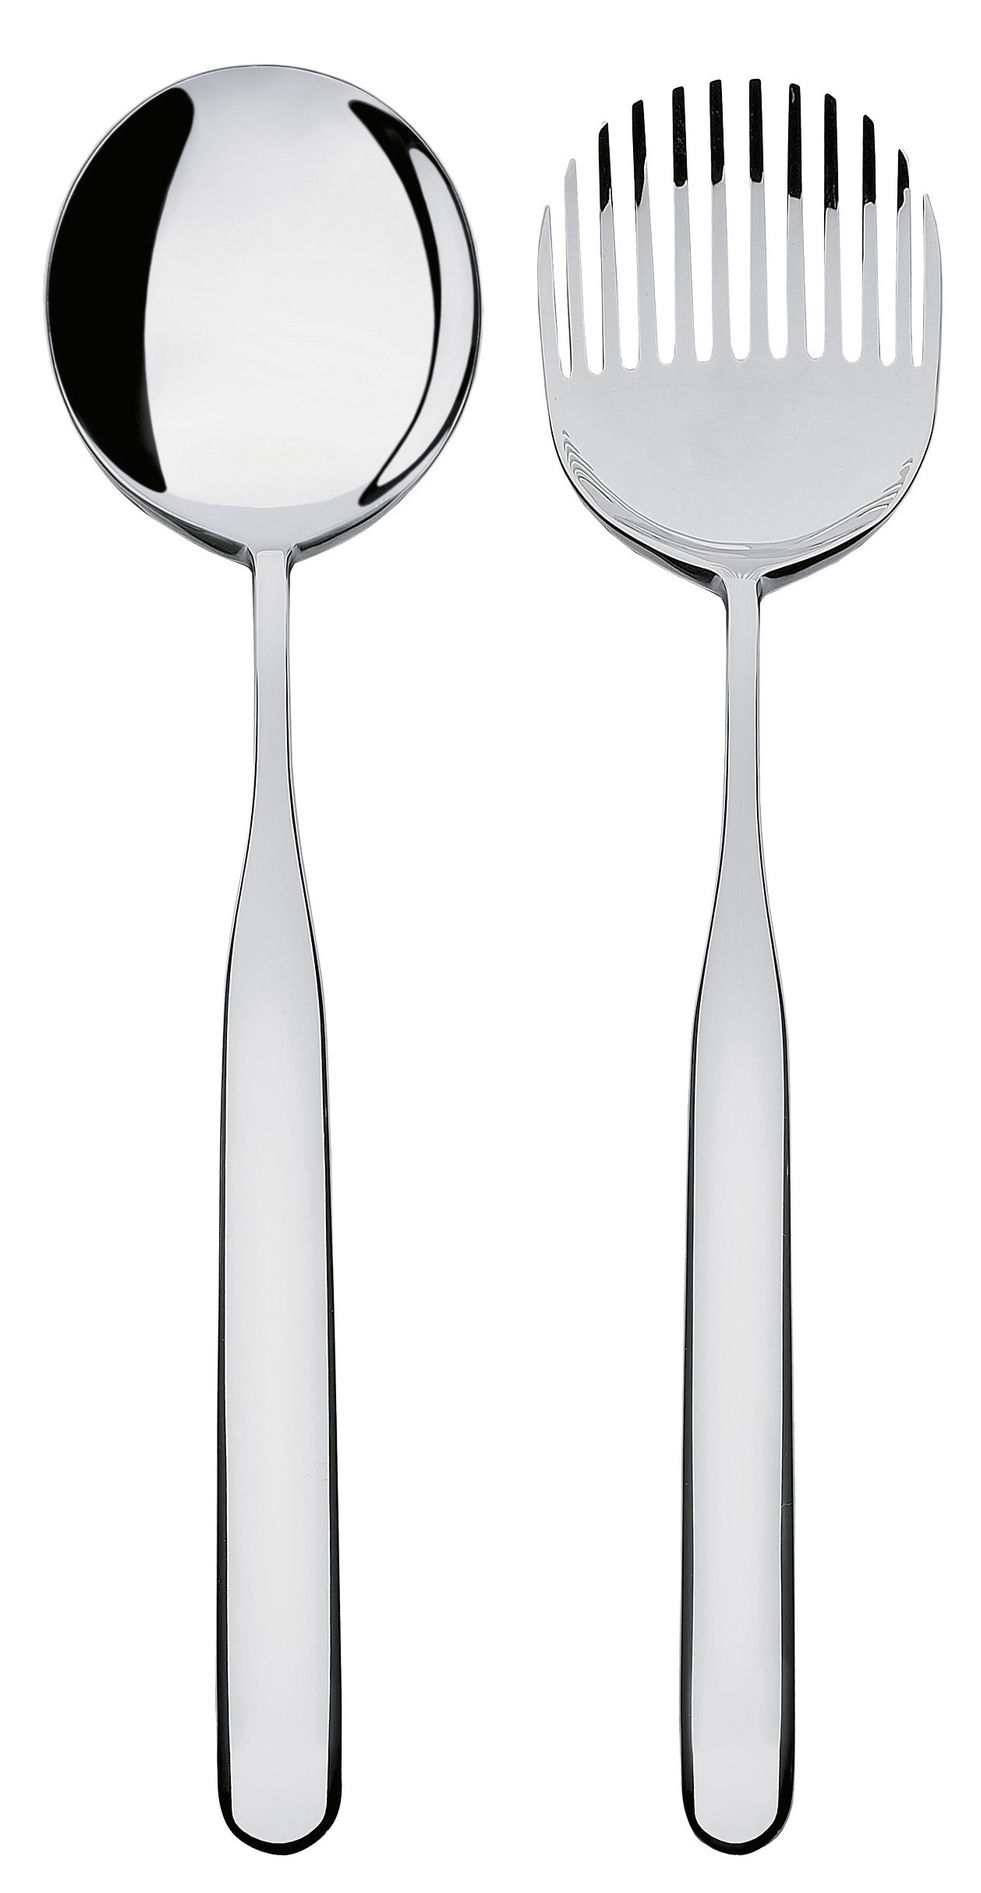 Tableware - Serving Cutlery - Collo-Alto Salad servers by Alessi - Mirror polished steel - Stainless steel 18/10